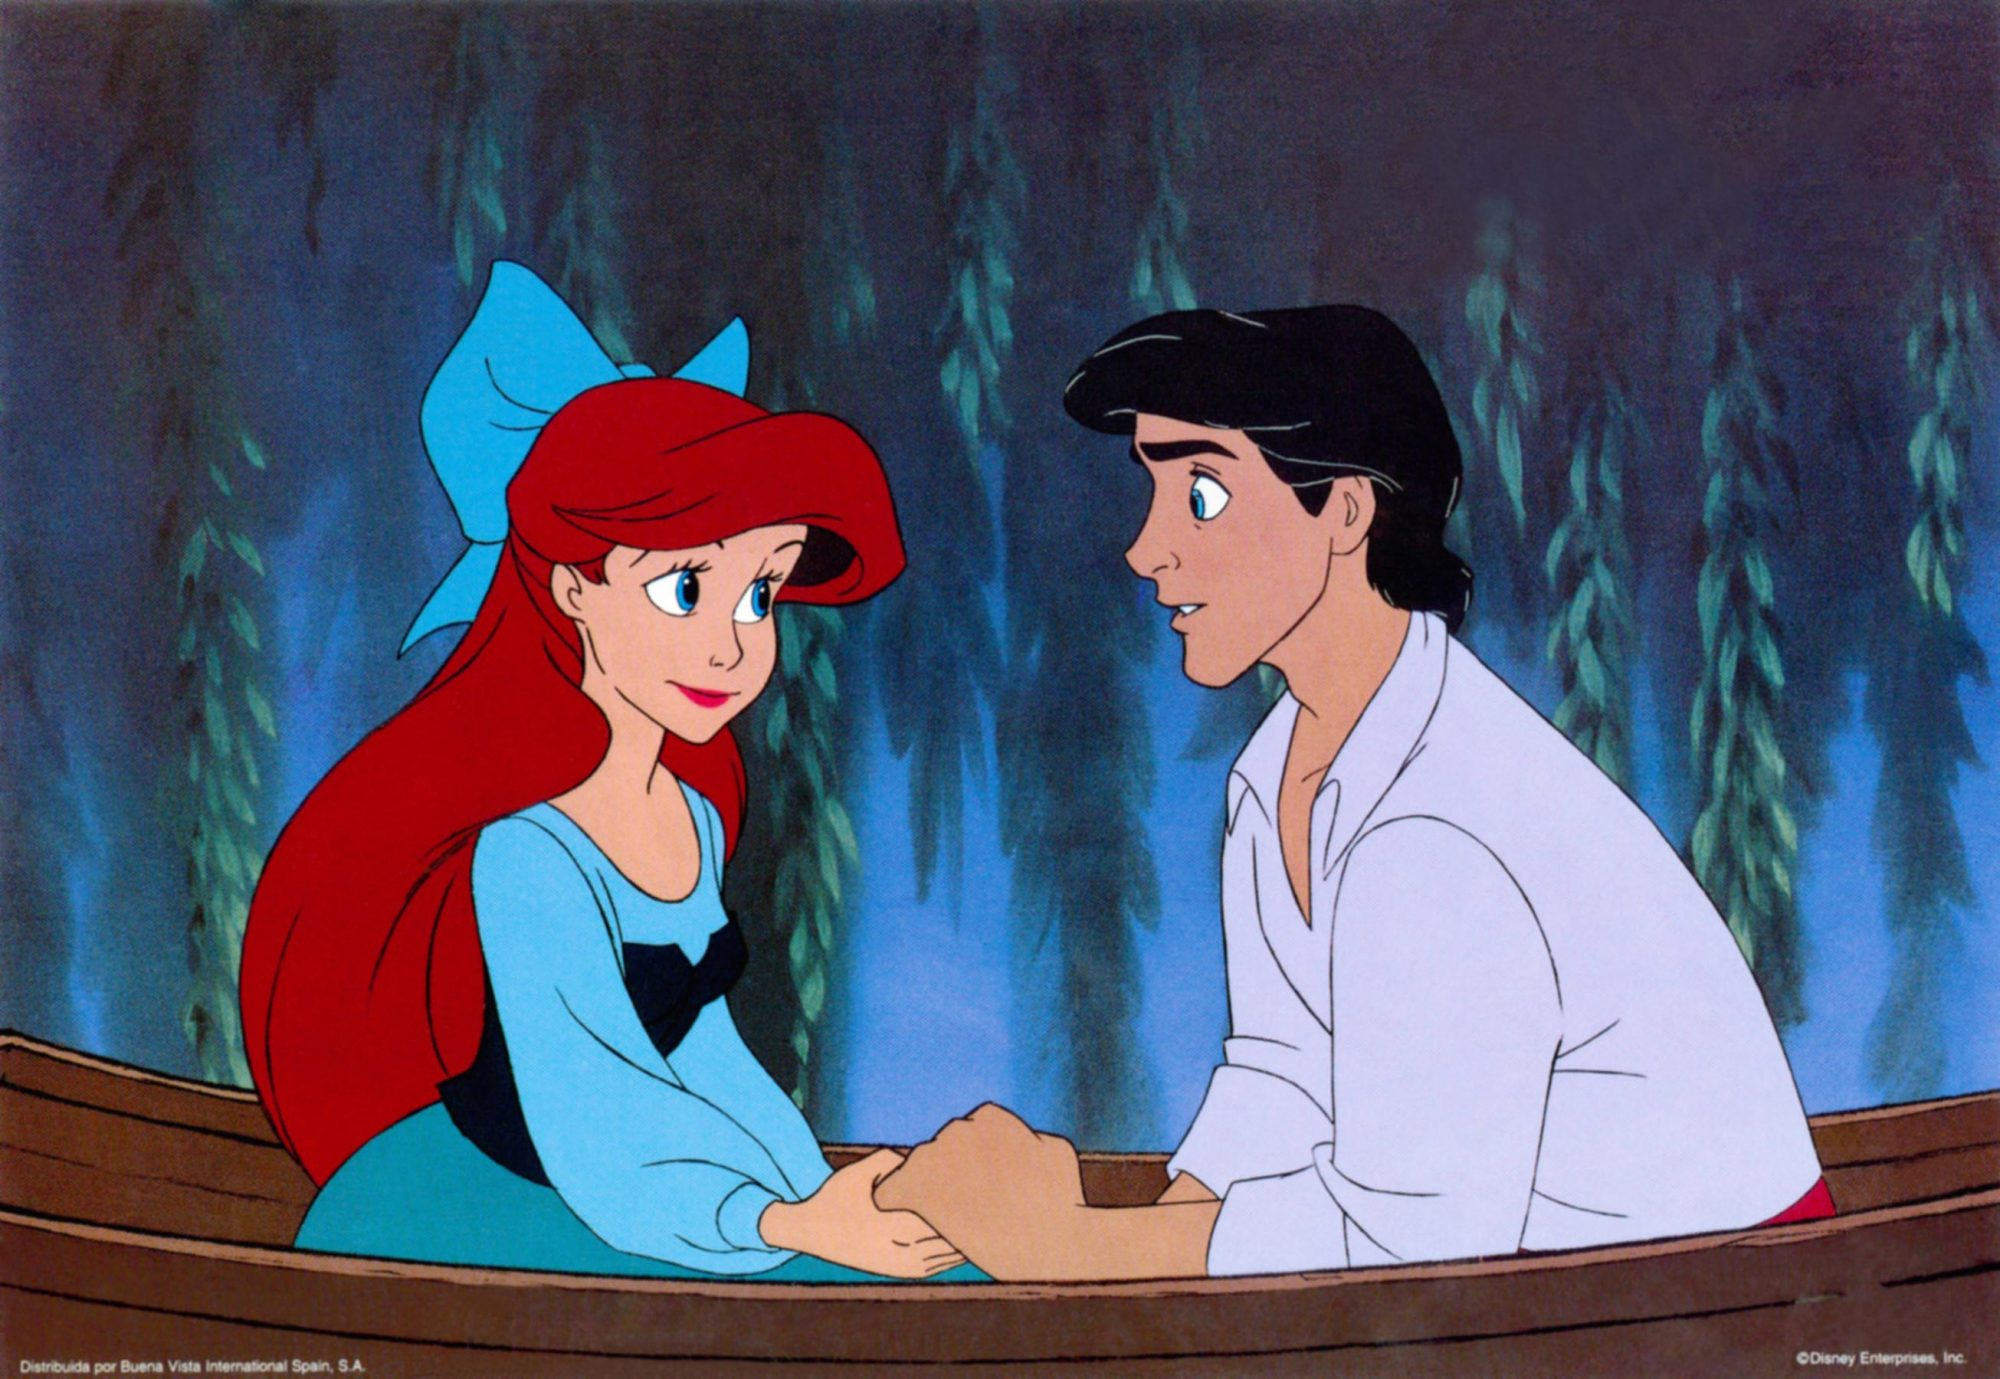 THE LITTLE MERMAID, from left: Ariel, Prince Eric, 1989, © Walt Disney/courtesy Everett Collection